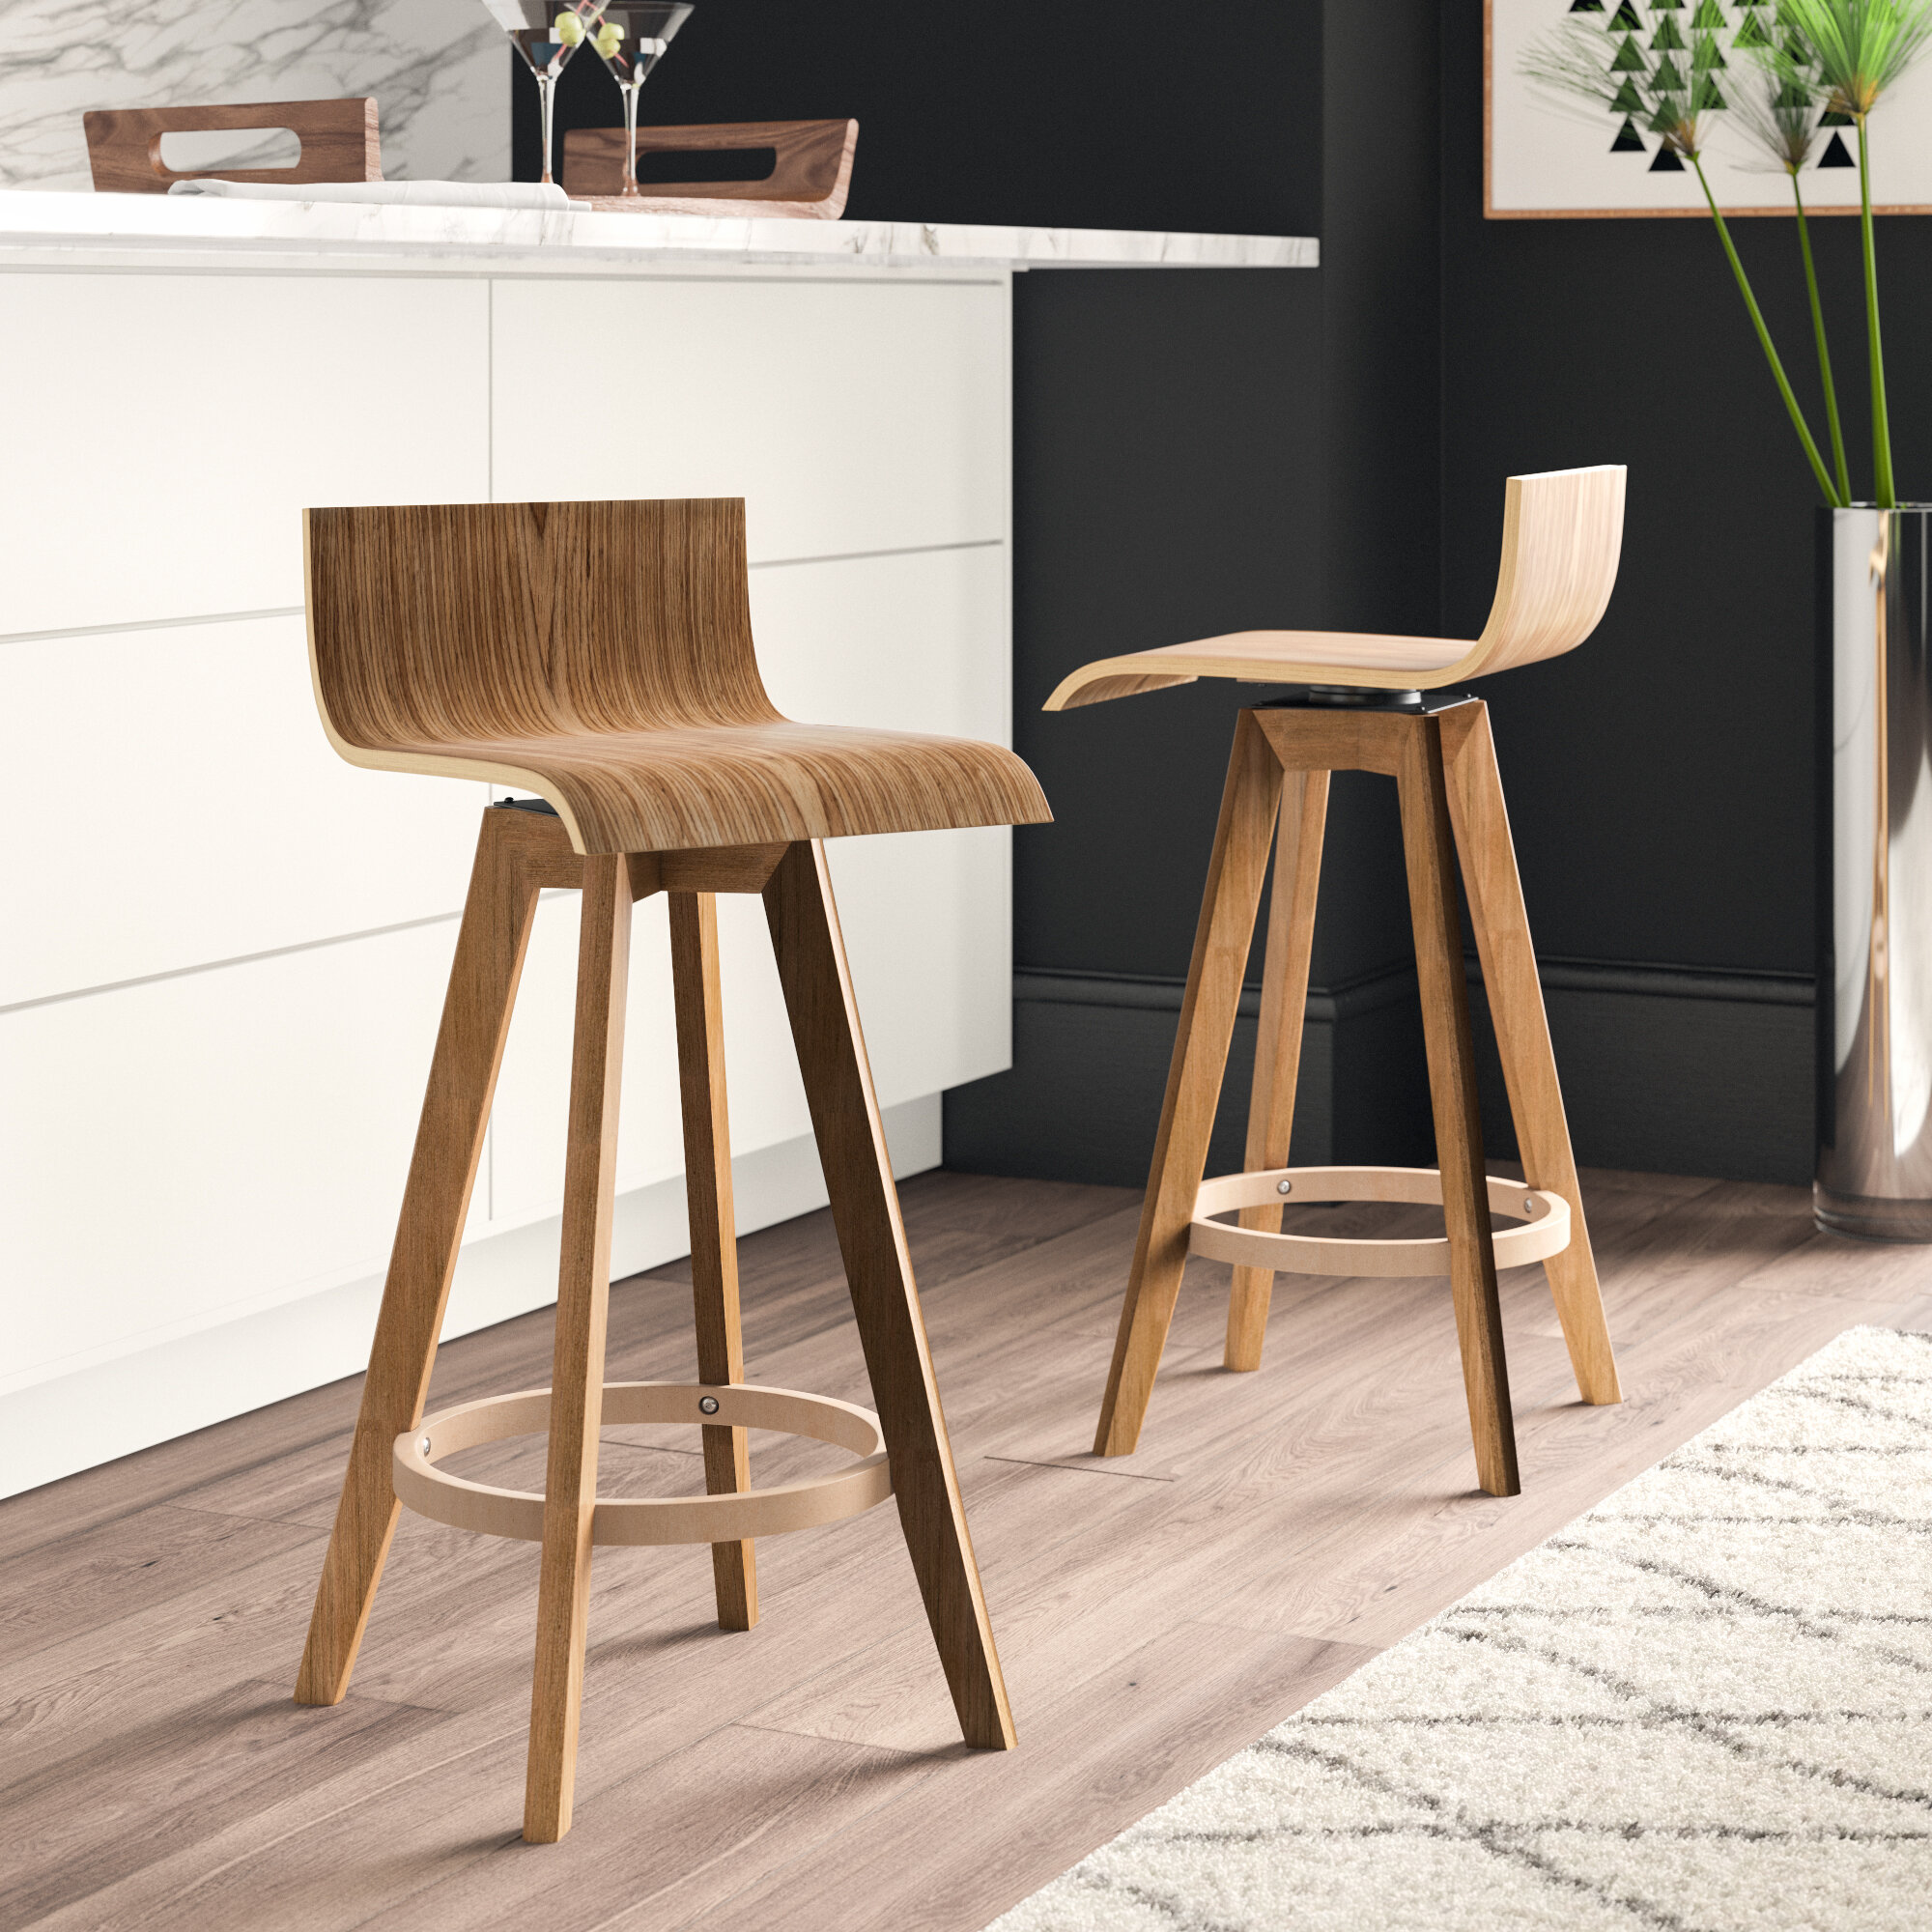 Groovy Dery Swivel Bar Counter Stool Caraccident5 Cool Chair Designs And Ideas Caraccident5Info